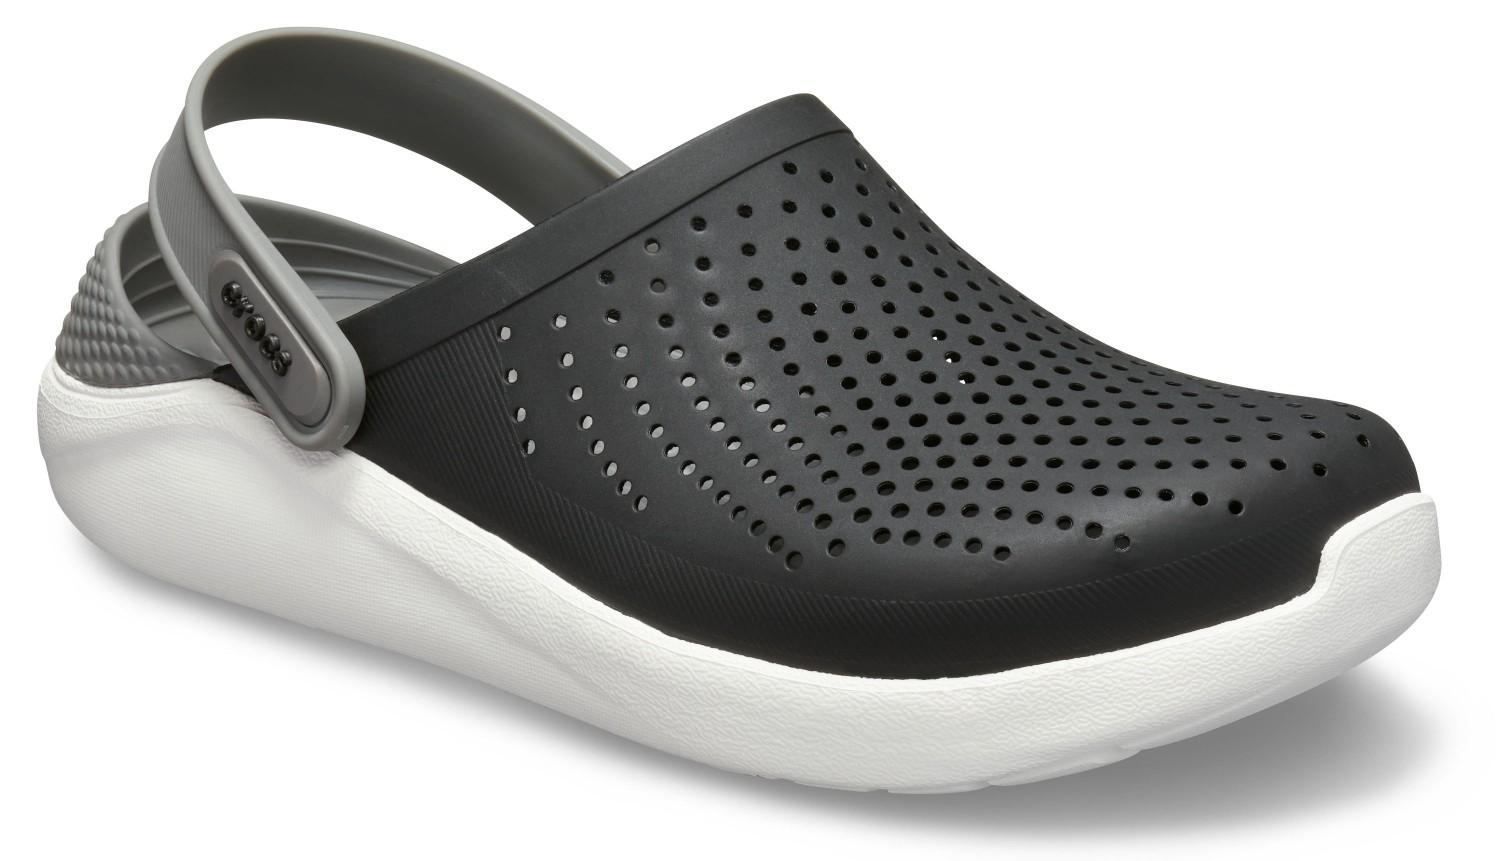 c22c0cdf789c5 Crocs Philippines  Crocs price list - Crocs Flats